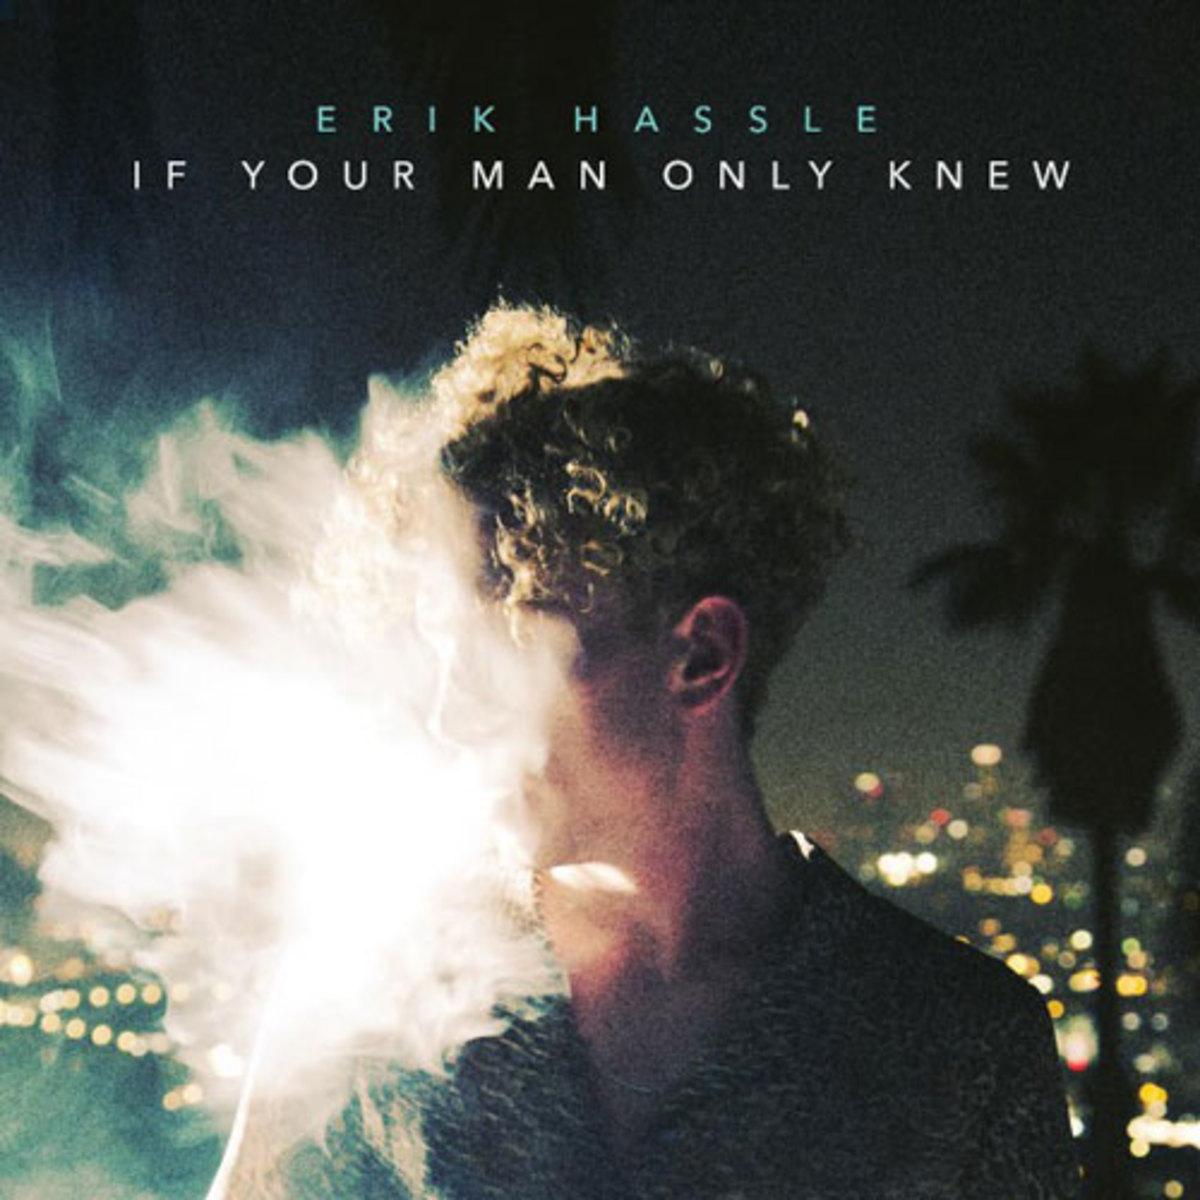 erik-hassle-if-your-man-only-knew.jpg